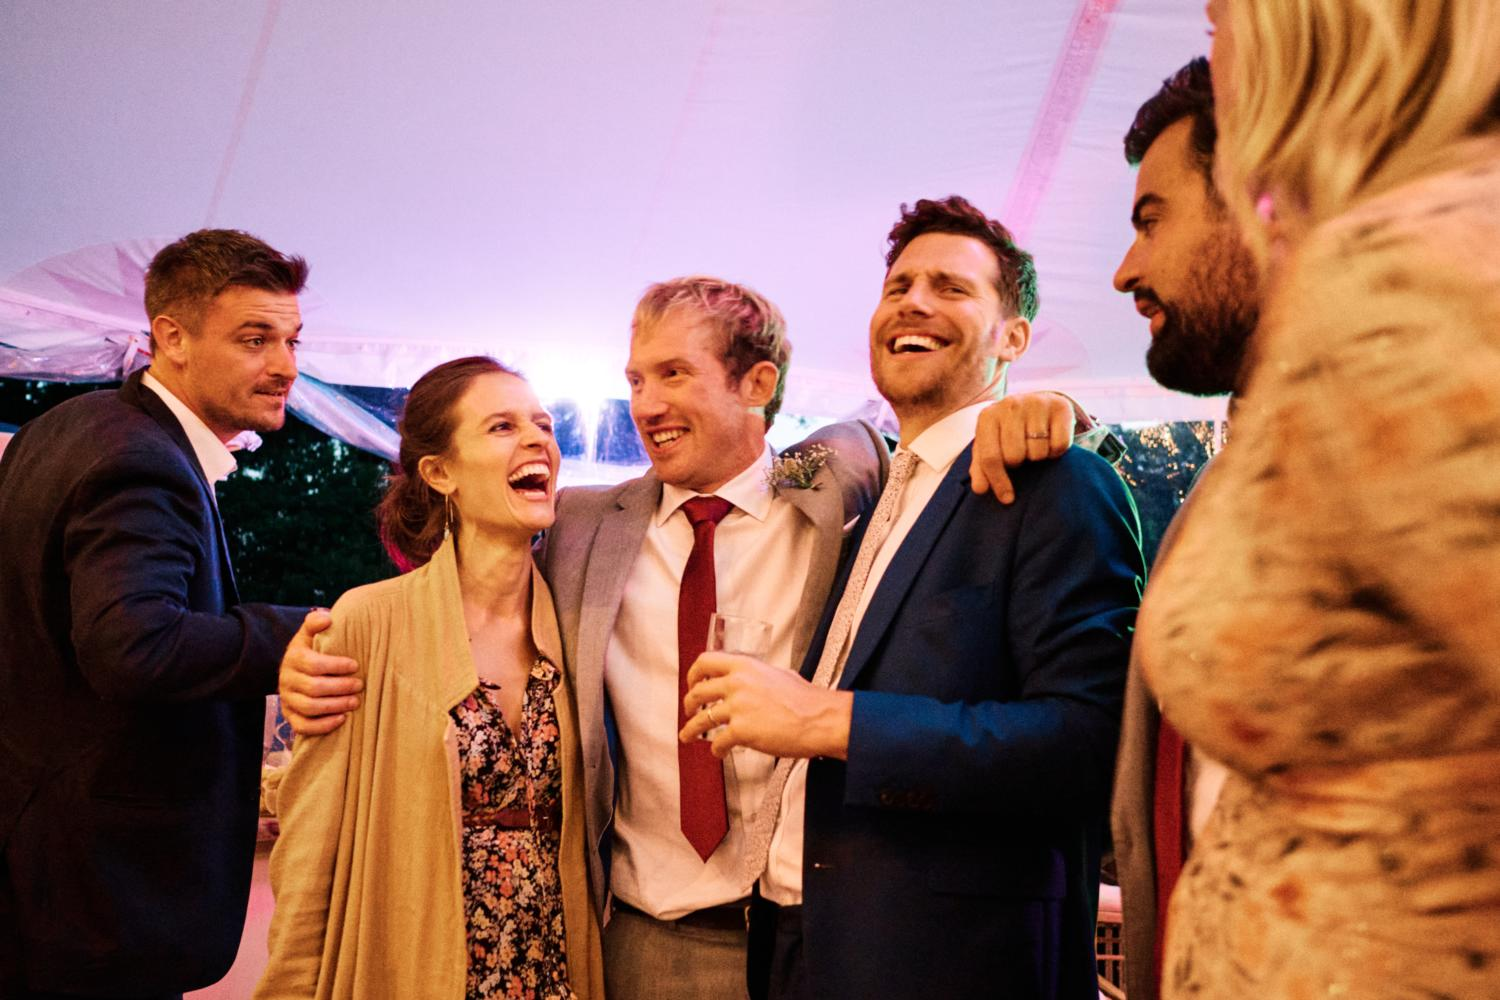 A groom holds his friends in a marquee